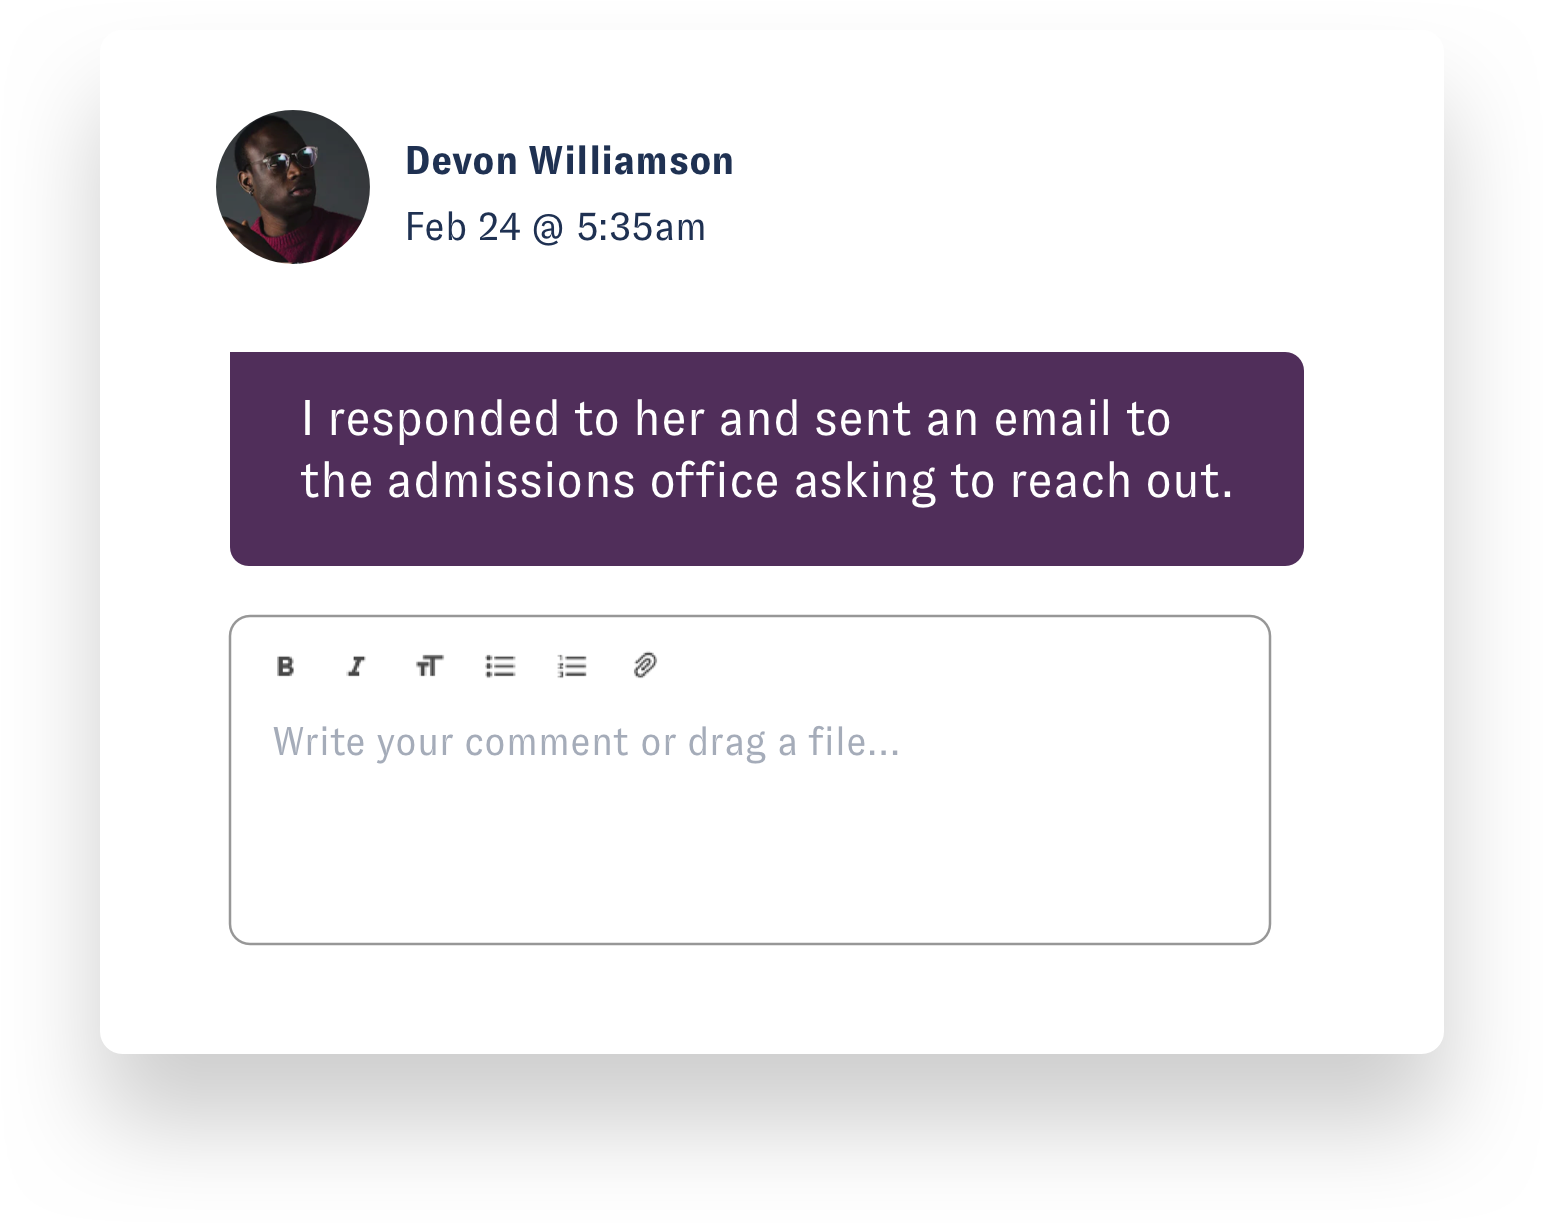 "Nuvi Engage has a chat box that allows teams members to leave notes and communicate about a customer concern or question in the platform for easy collaboration and efficient customer service. This image is an example. Devon Williamson, an employee, comments on Feb. 24th at 5:35 am ""I responded to her and sent an email to the admissions office asking to reach out. The place to write a comment is below Devon's. This example doesn't show this, but people within the company are taggable, if needed."